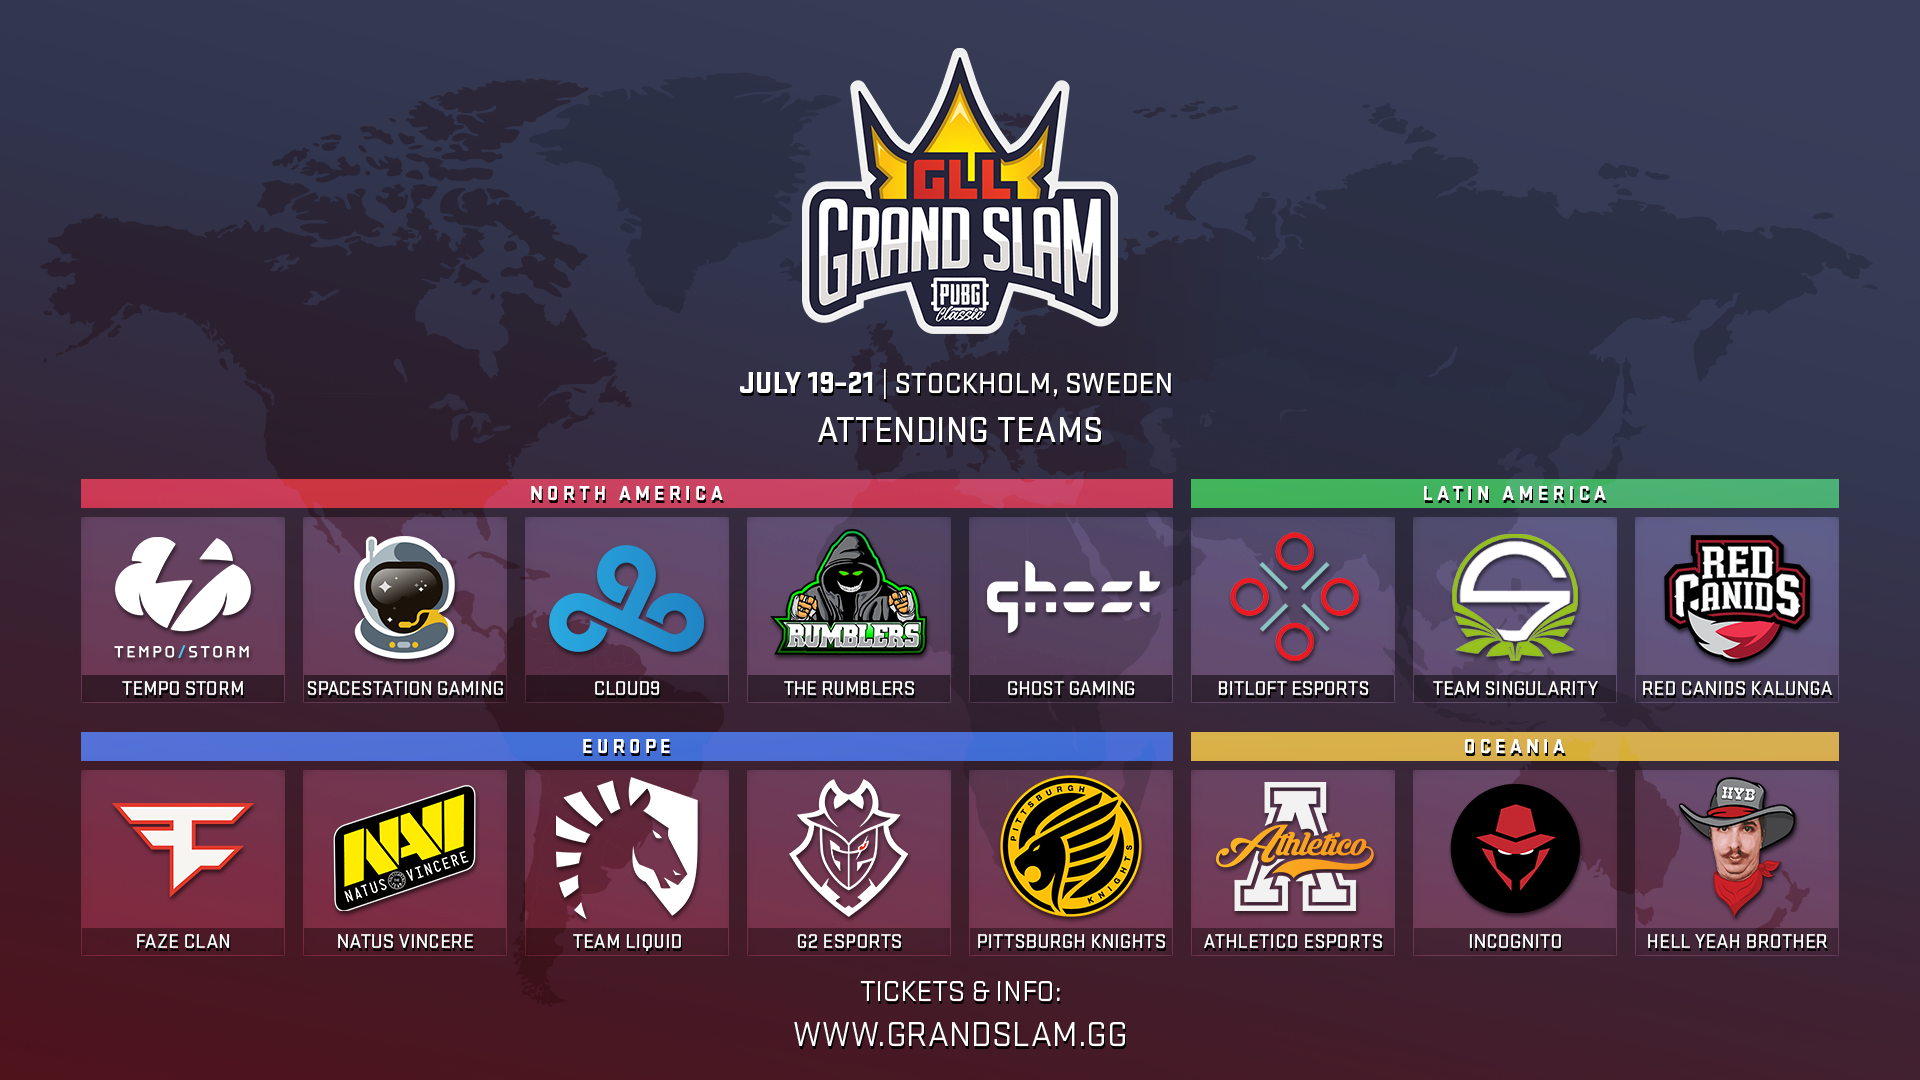 The 16 qualified teams for the GLL Grand Slam: PUBG Classic. From North America Tempo Storm, Spacestation Gaming, Cloud9, The Rumblers and Ghost Gaming qualified. From Latin America we saw Bitloft Esports, Team Singularity as well as the team previously known as Brazilian Crusaders (now RED Canids Kalunga). There was also three teams from Oceania: Athletico Esports, Incognito and Hell Yeah Brother. Finally from Europe FaZe Clan, Natus Vincere (Na'Vi), Team Liquid, G2 Esports - and by a cheer miracle, Pittsburgh Knights qualified. These teams will face off in Stockholm, Sweden at Stockholmsmässan to battle for $300,000.